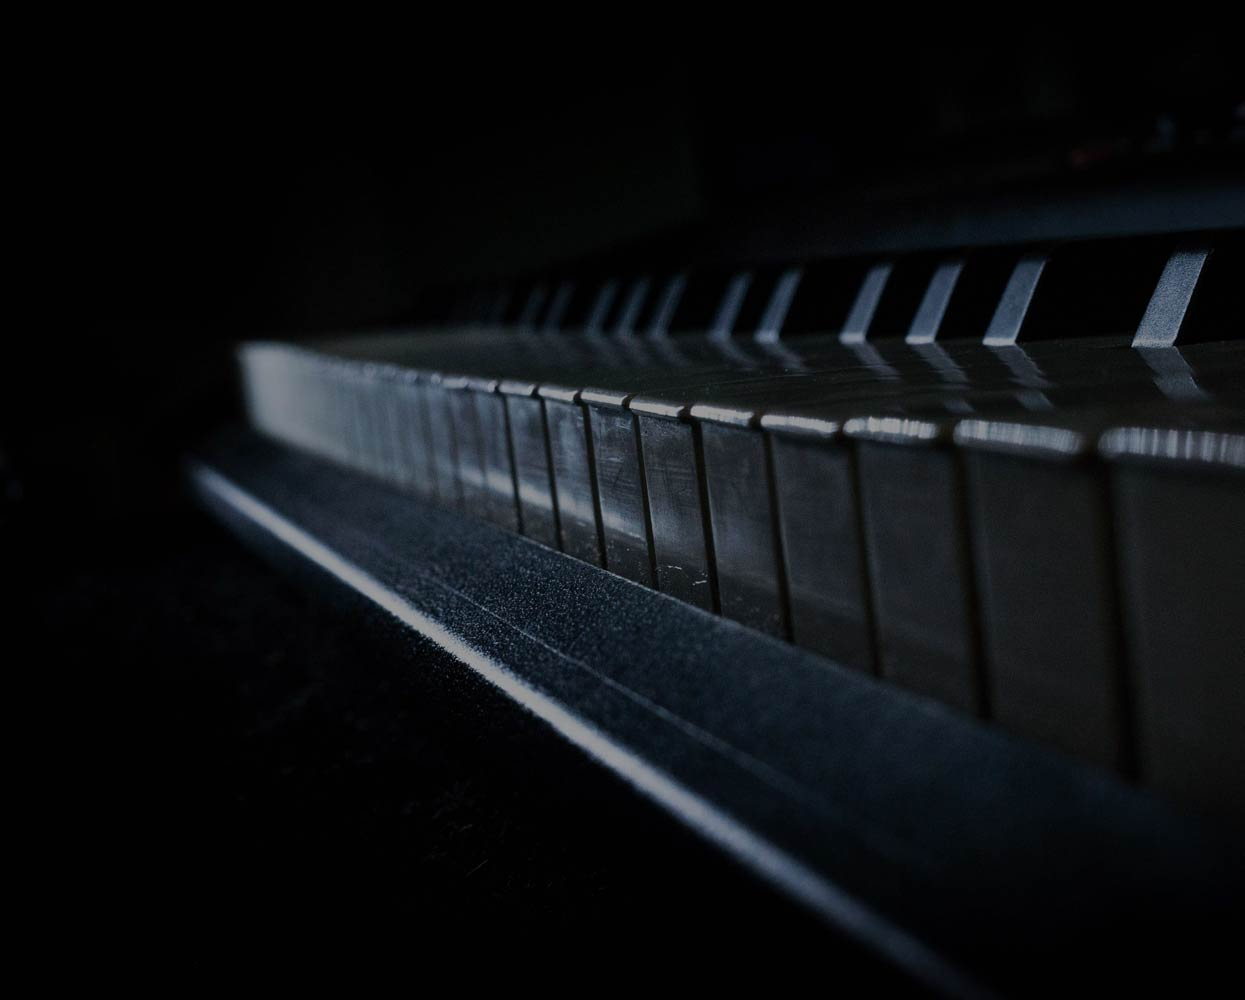 background of a close up of some piano keys